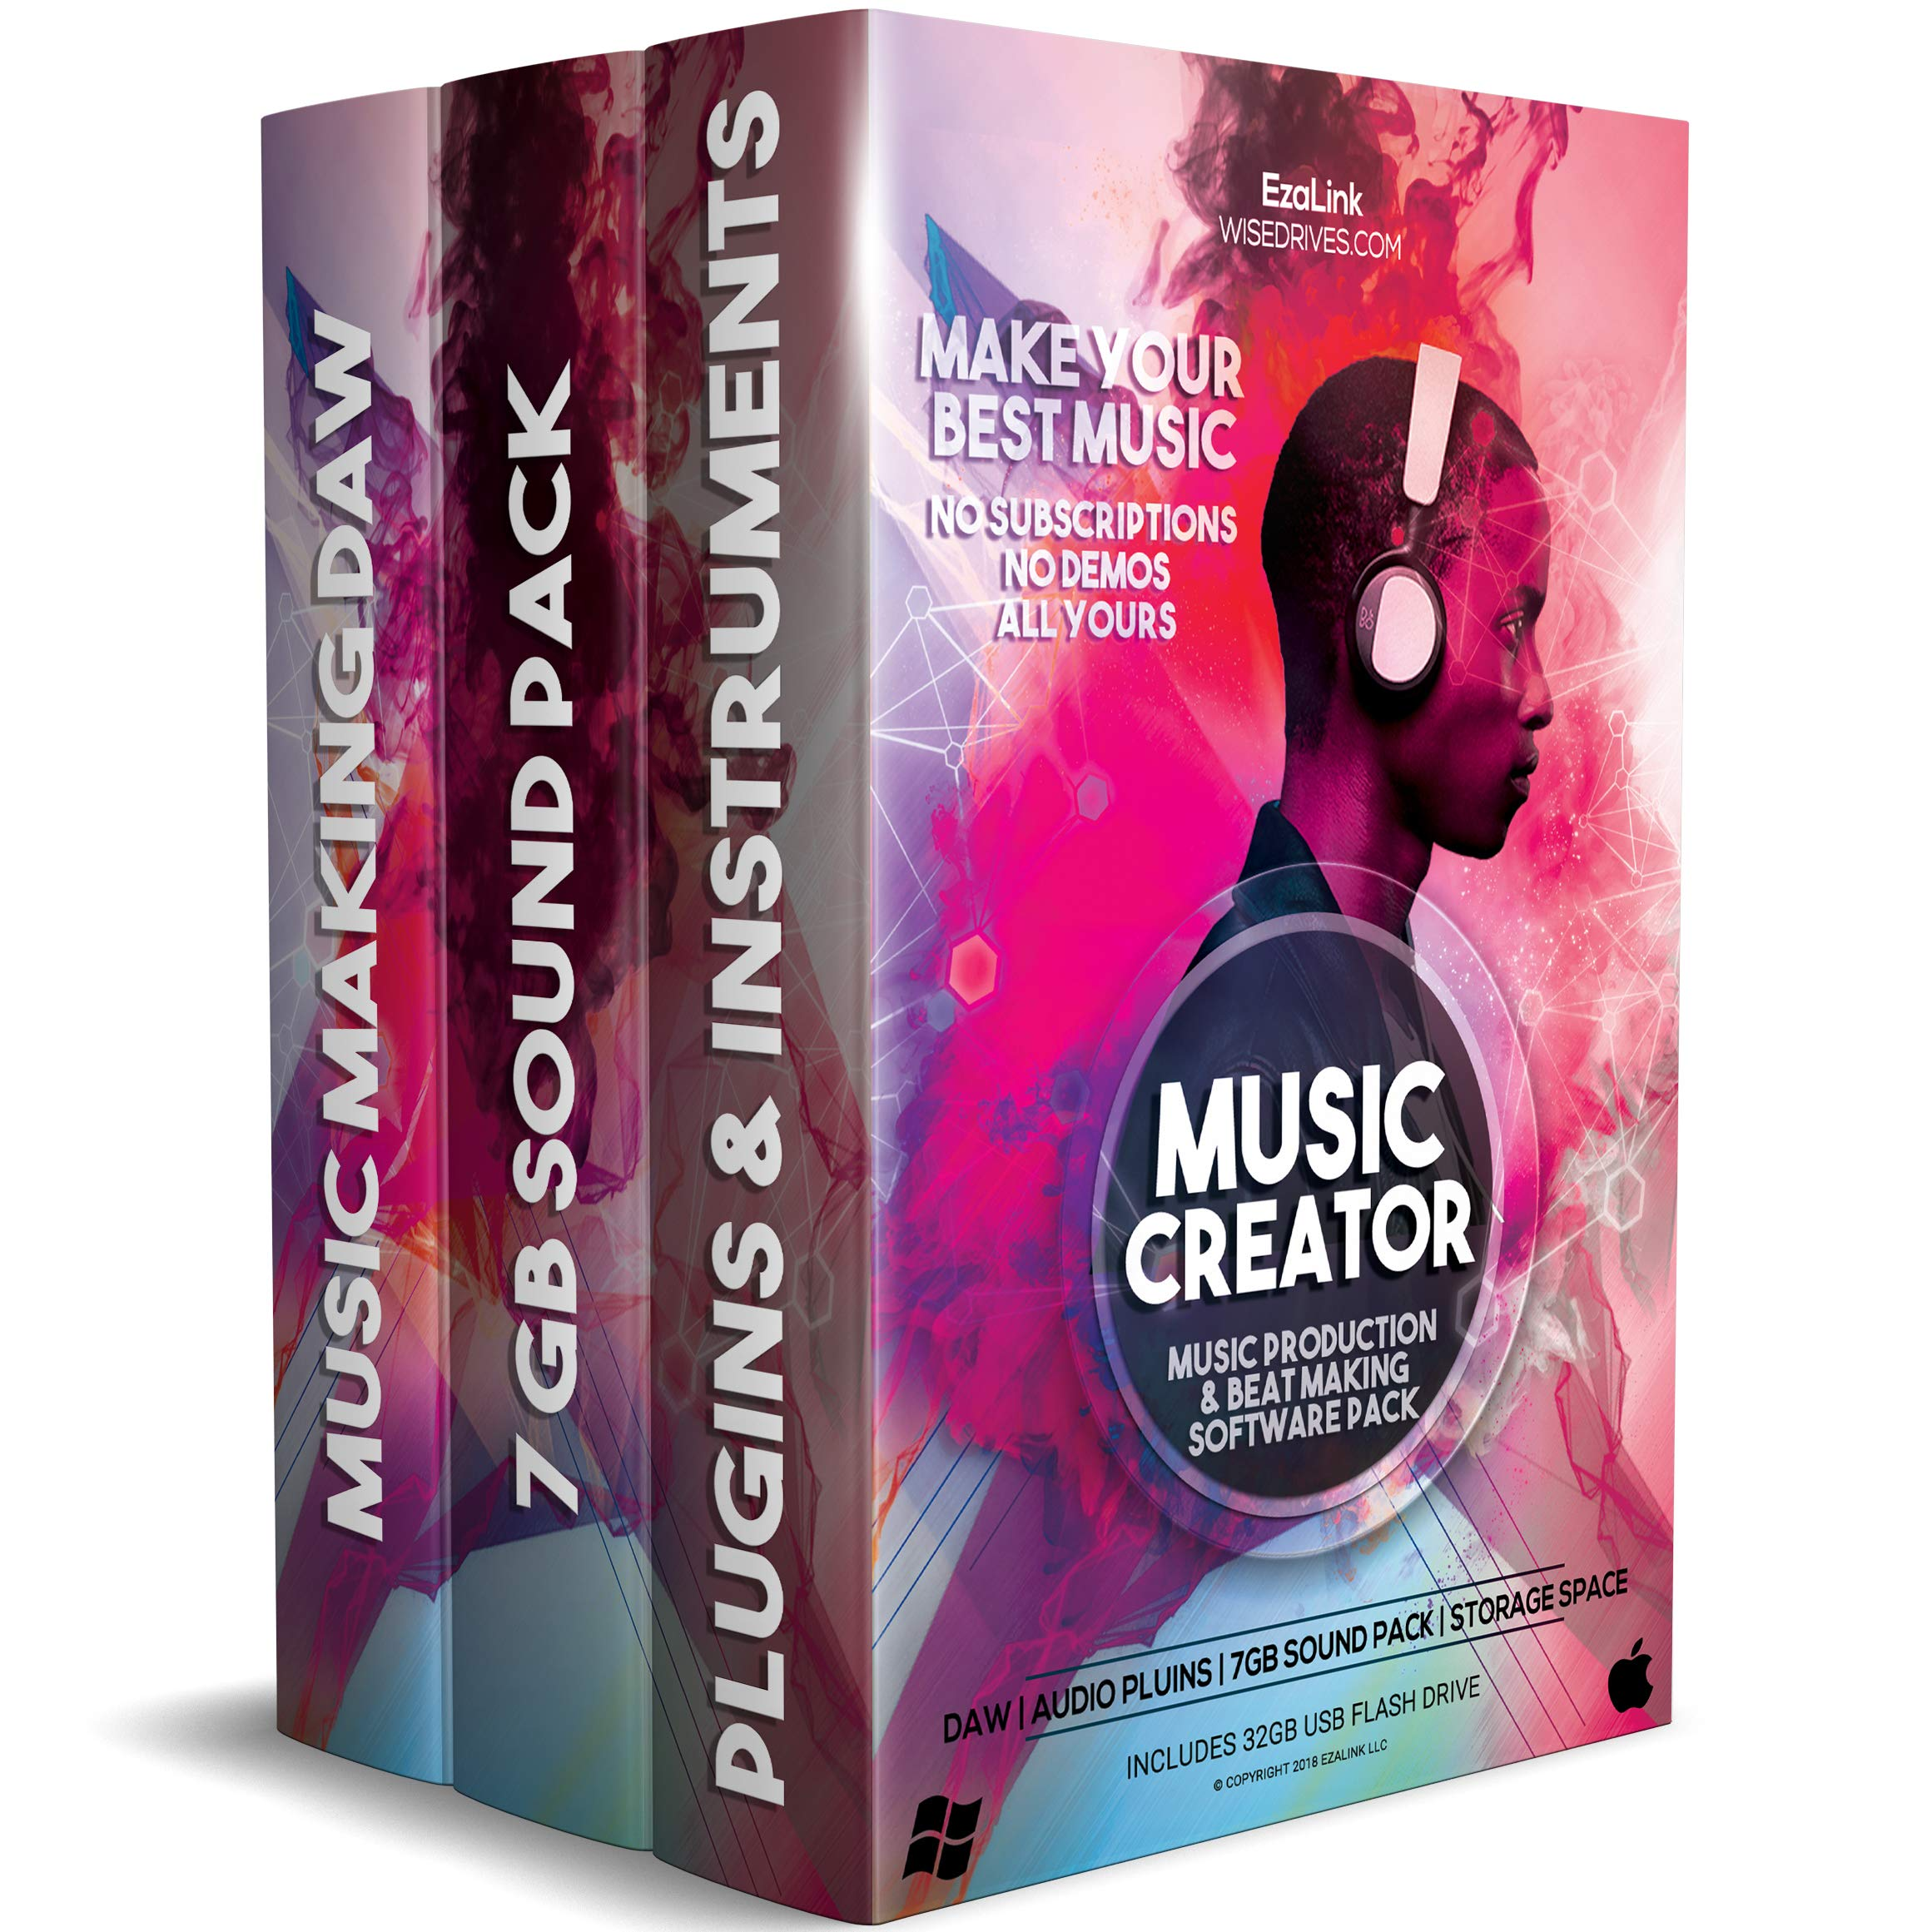 Music Editing Software for Recording Production Mixing & Beat Making Bundle - DAW, Audio Plugins, 7Gb Sound Pack on 32Gb USB (Windows PC & Mac) by Music Creator 2018